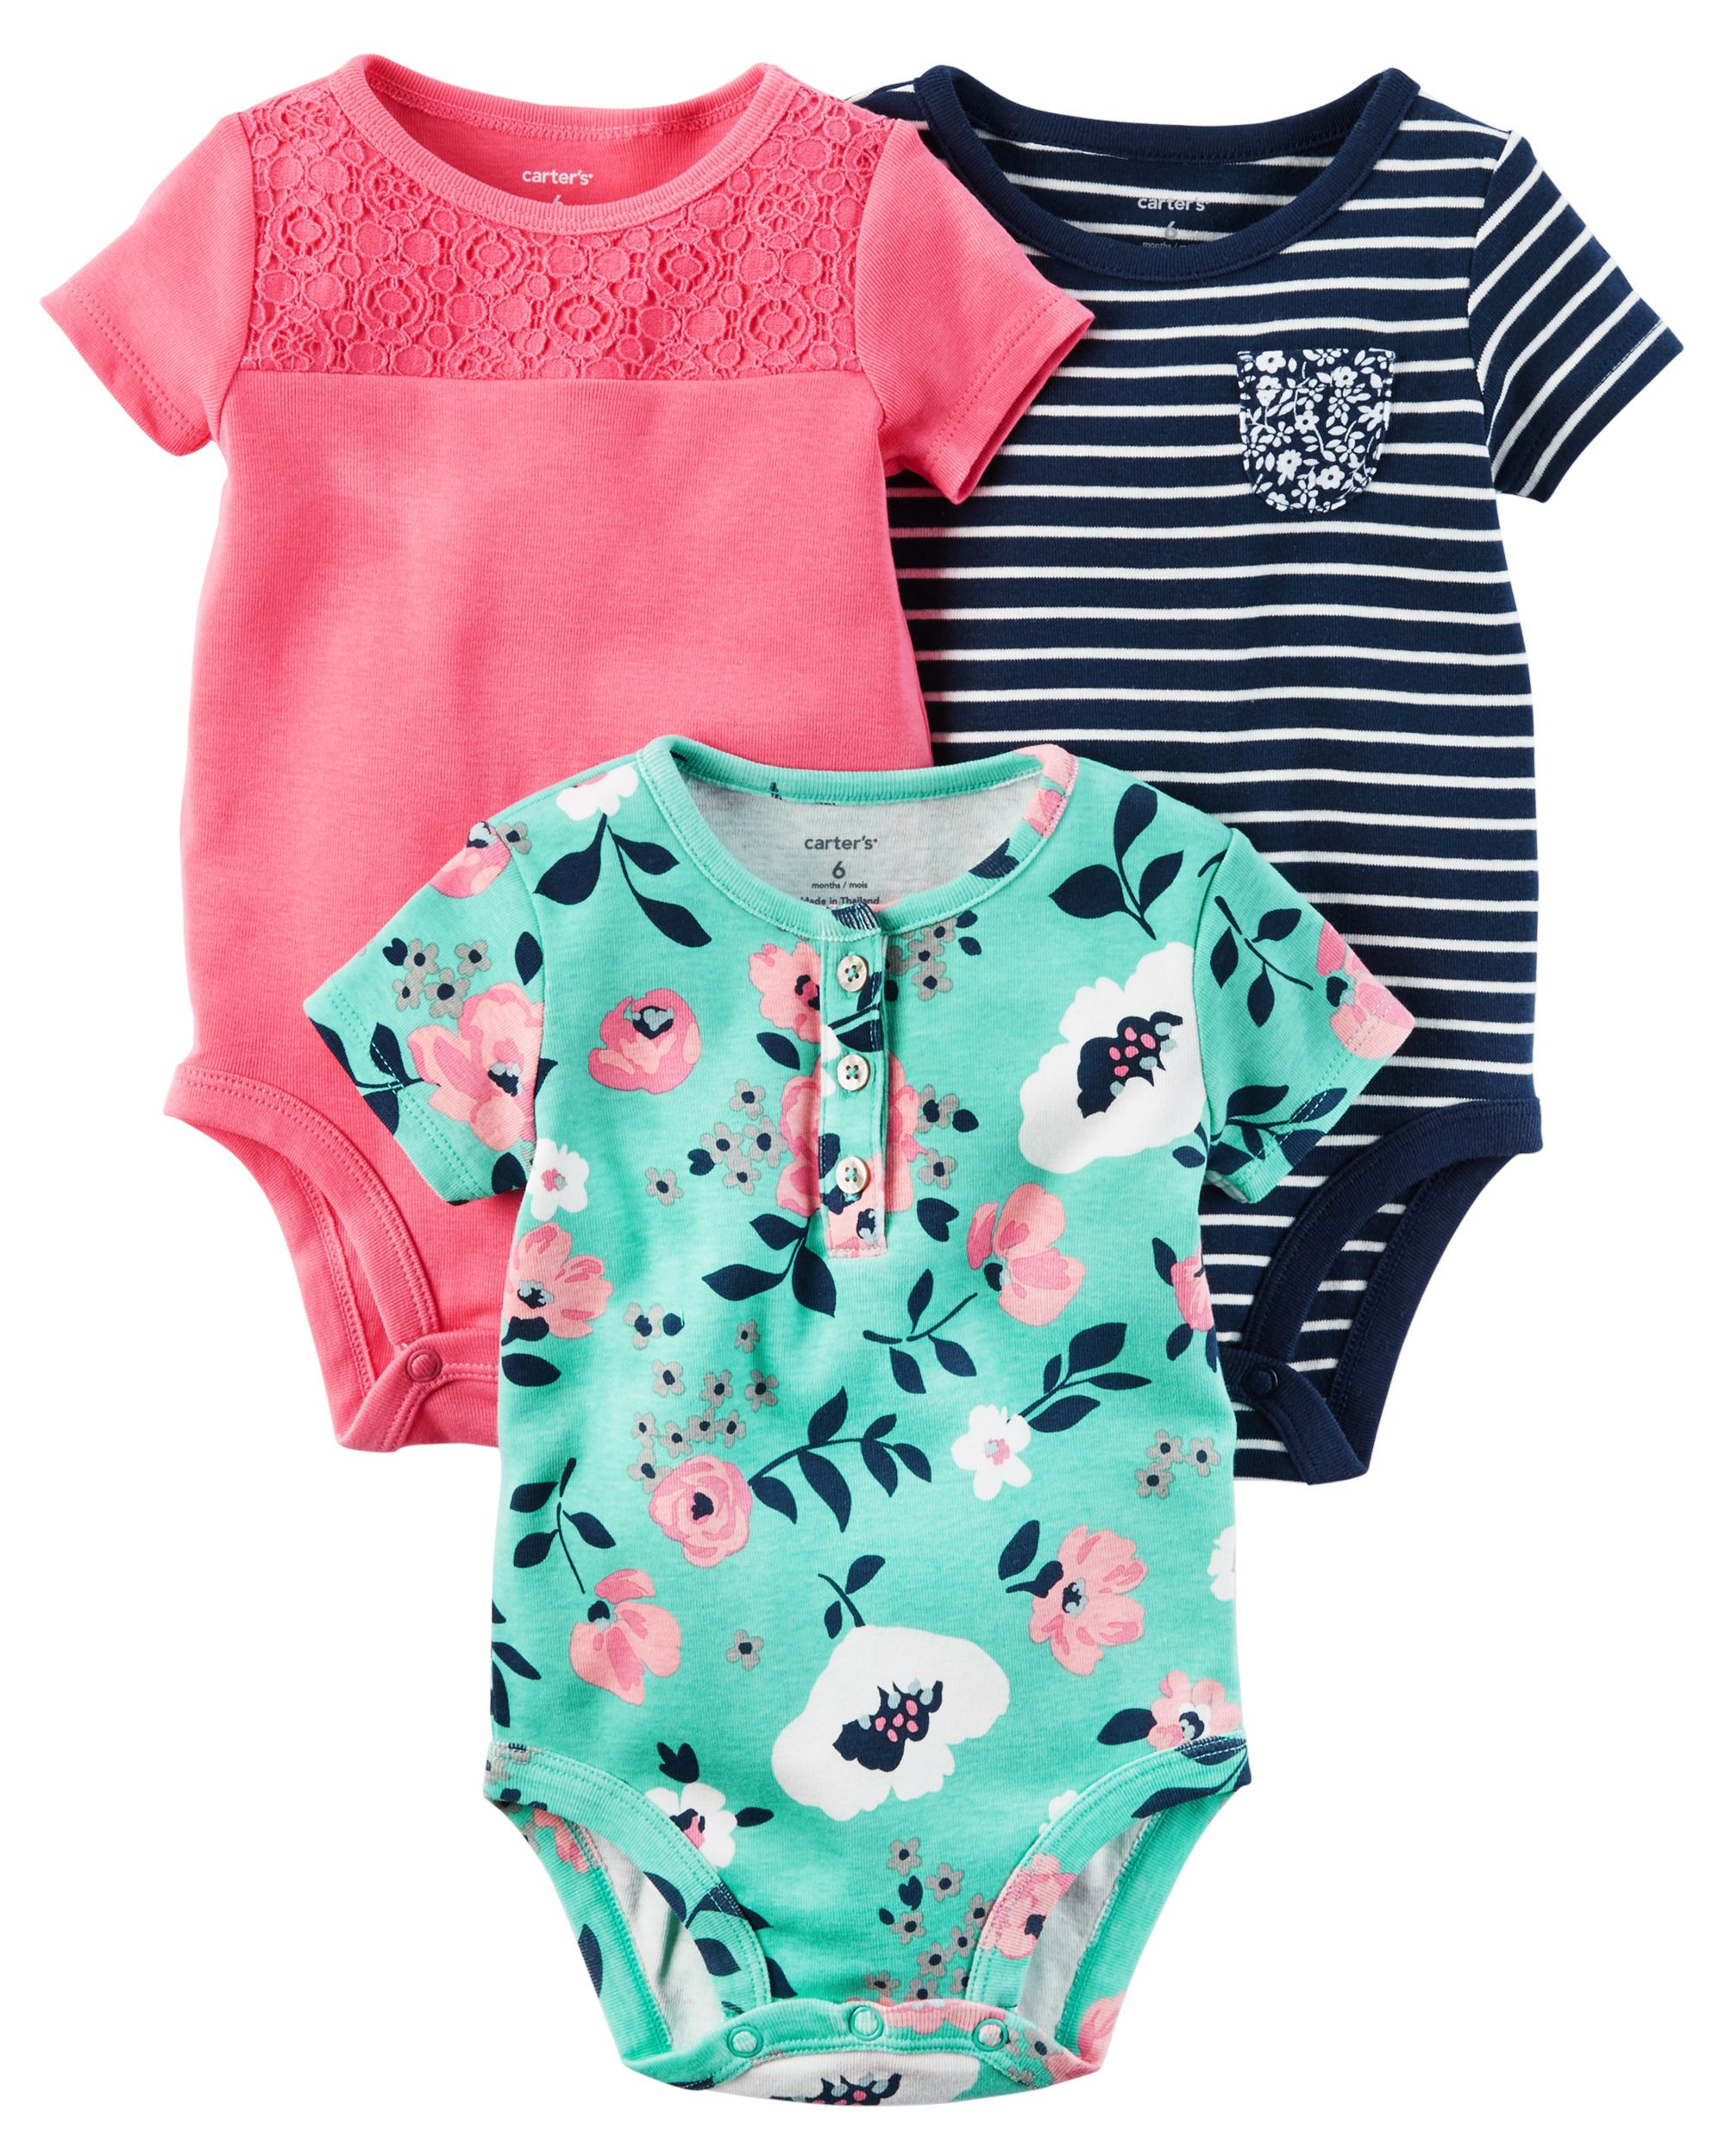 6a4ef24b4496 3-Pack Short-Sleeve Original Bodysuits